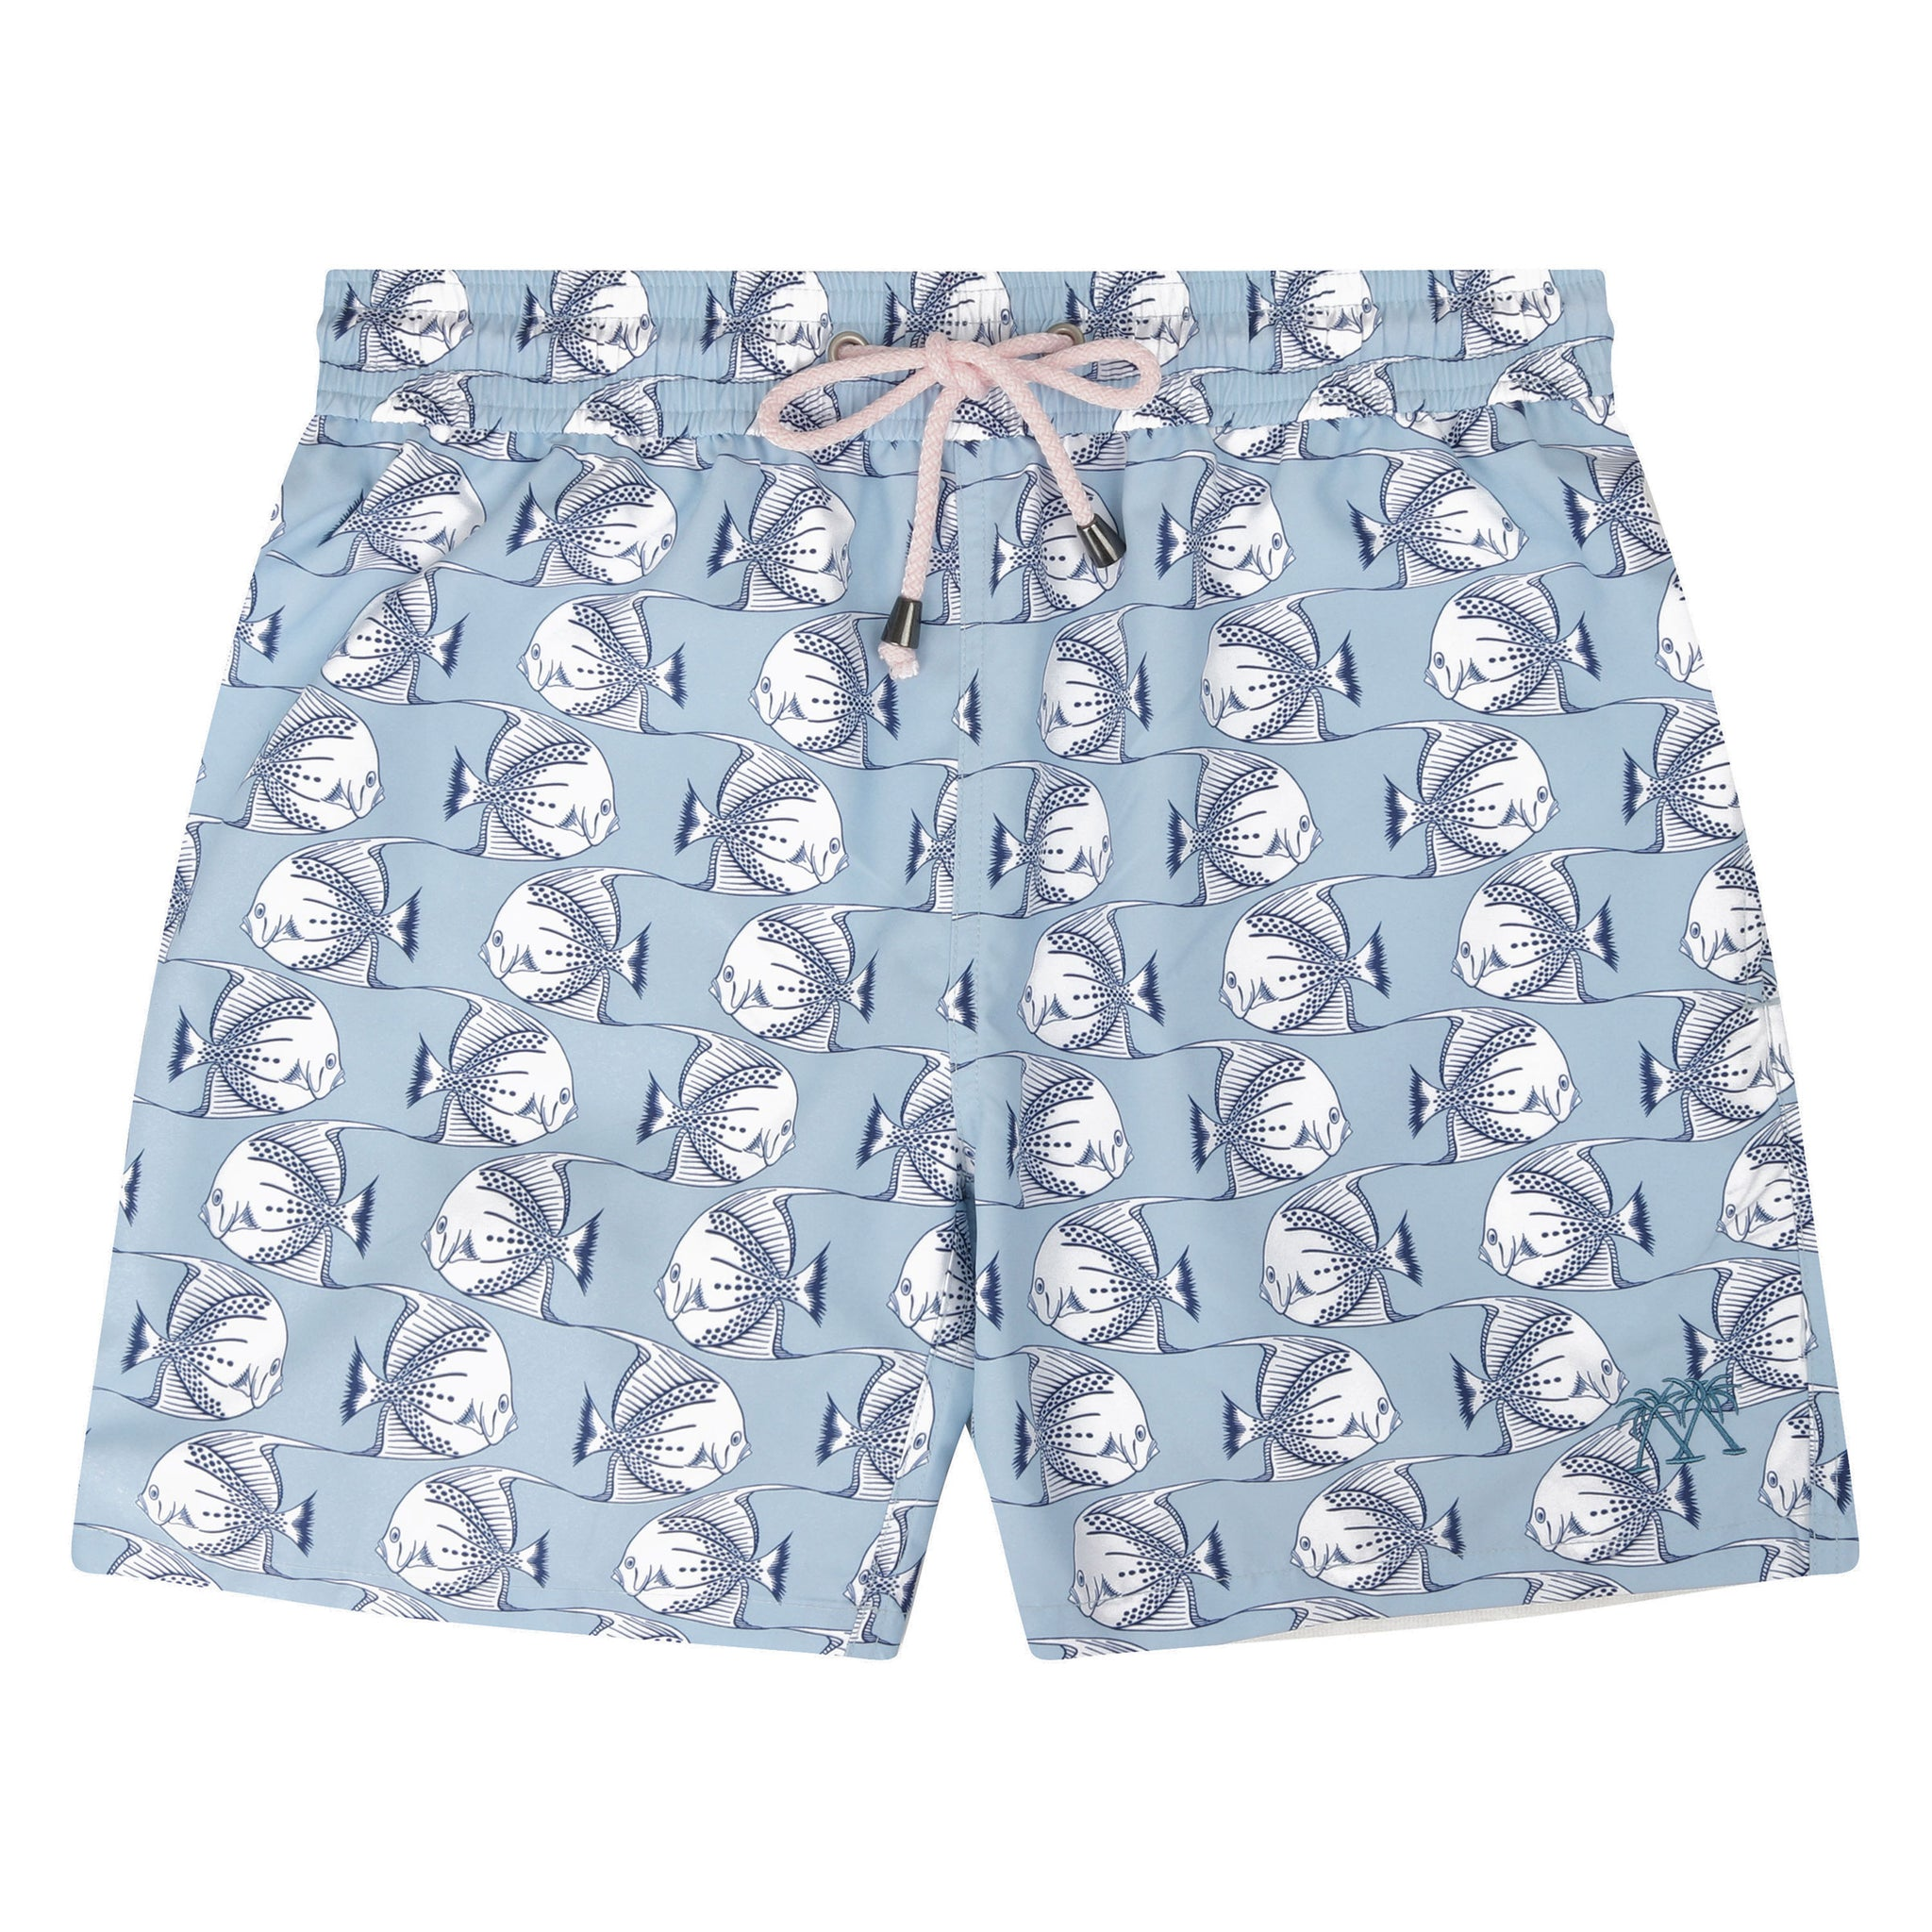 f3b61924aeeae Mens Trunks & Shorts - Pink House Mustique